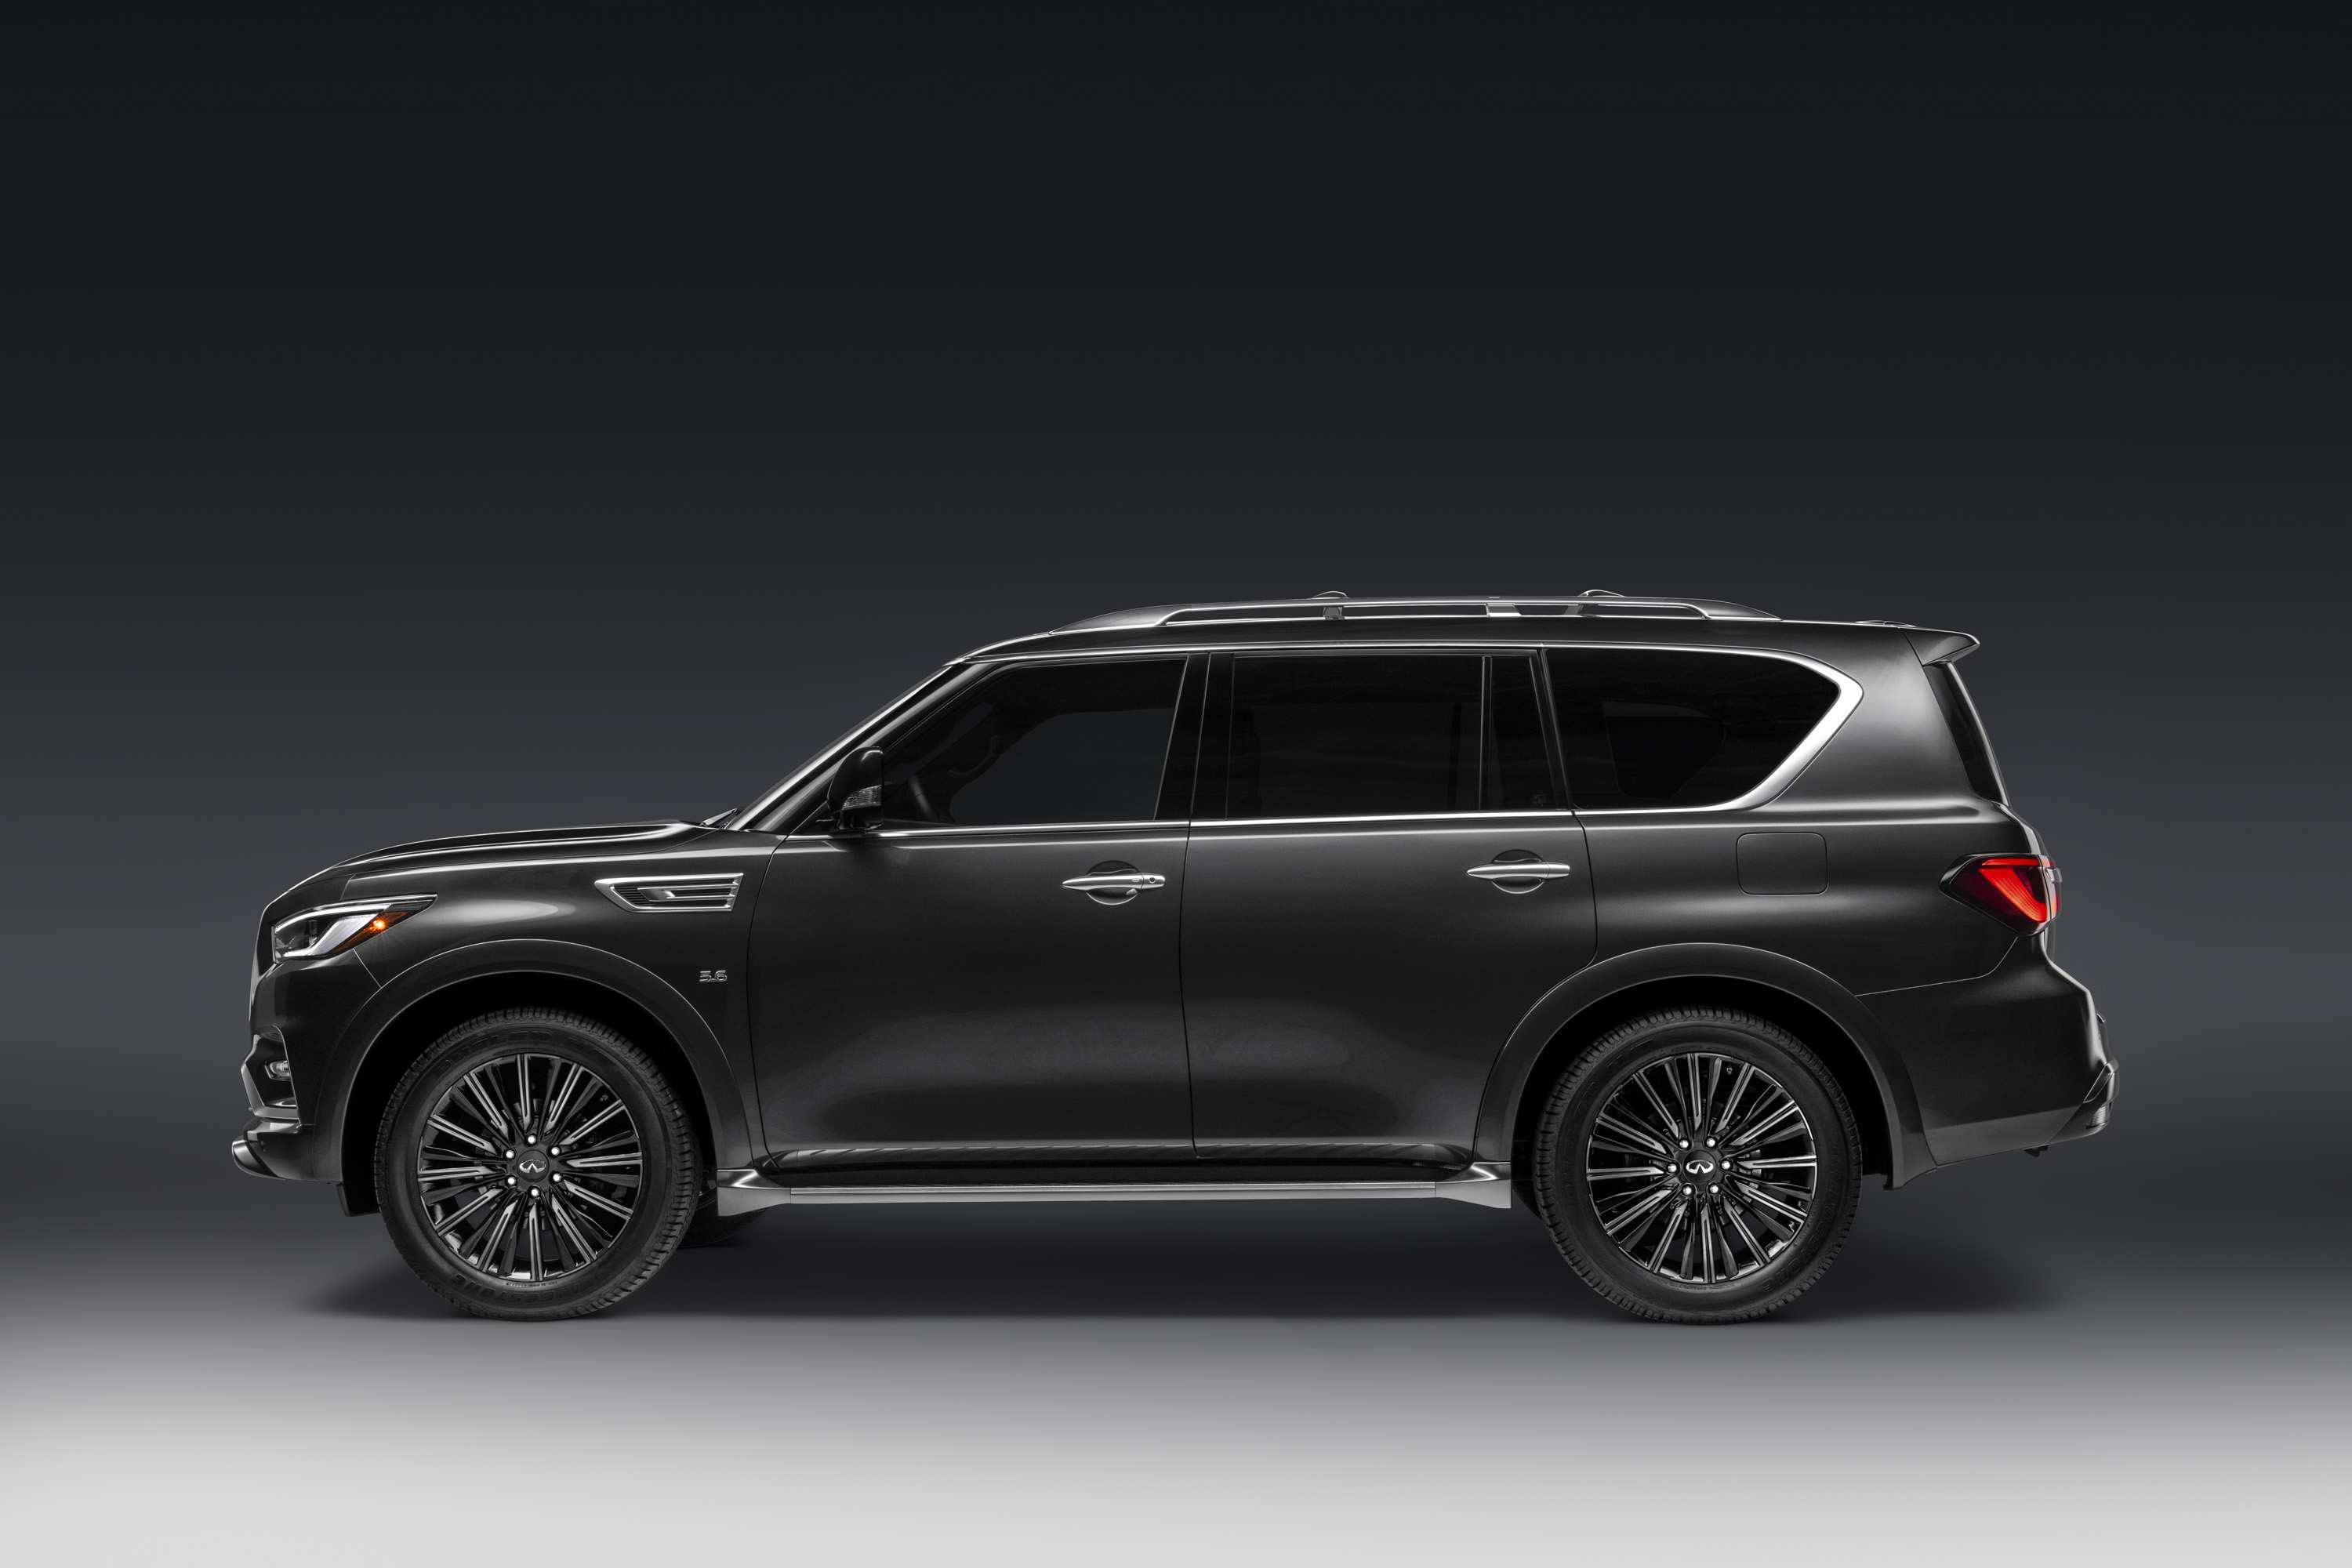 12 Best 2019 Infiniti QX80 Pictures